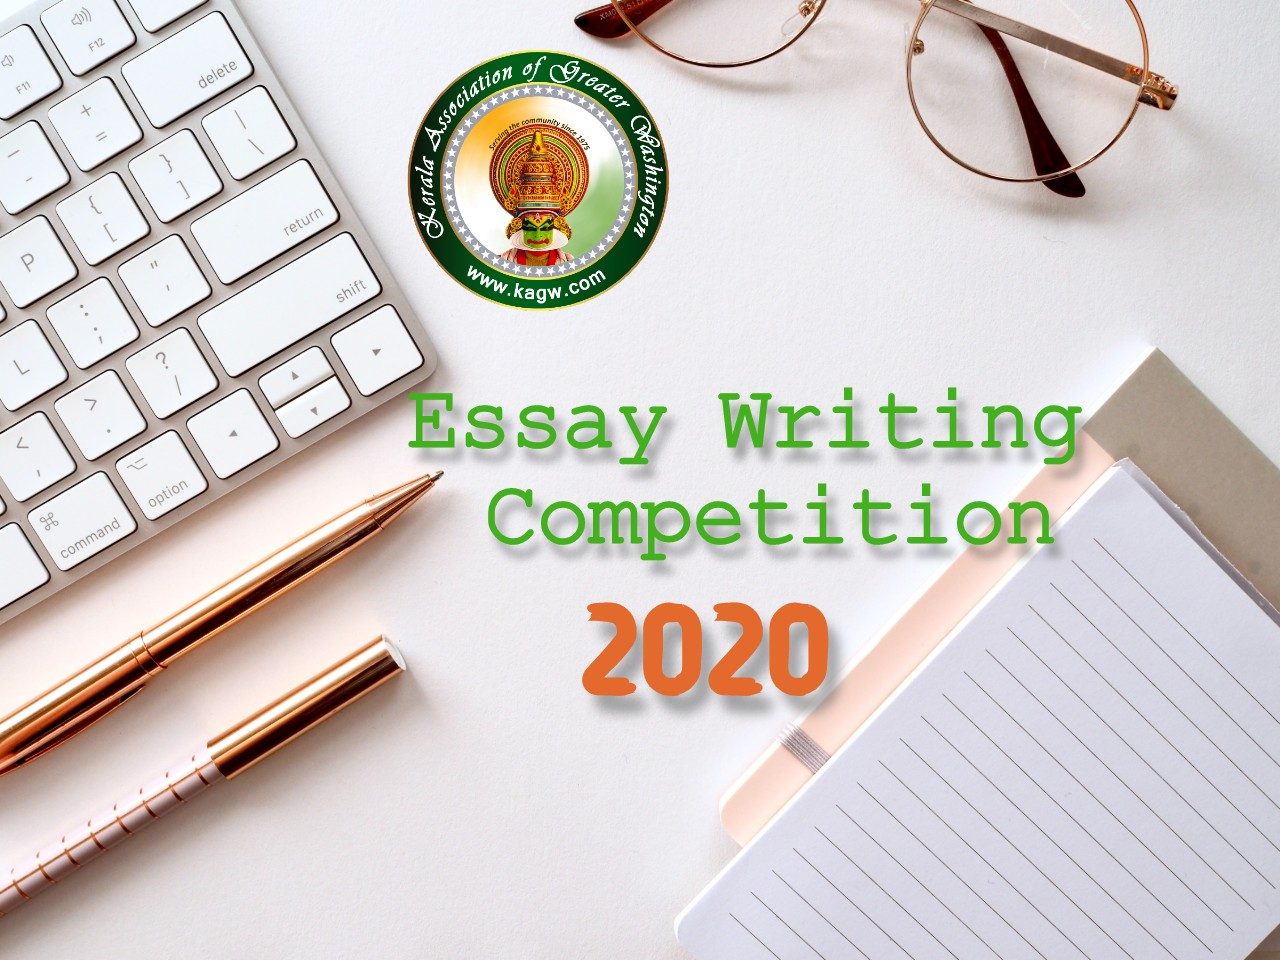 KAGW Essay Writing Competition 2020